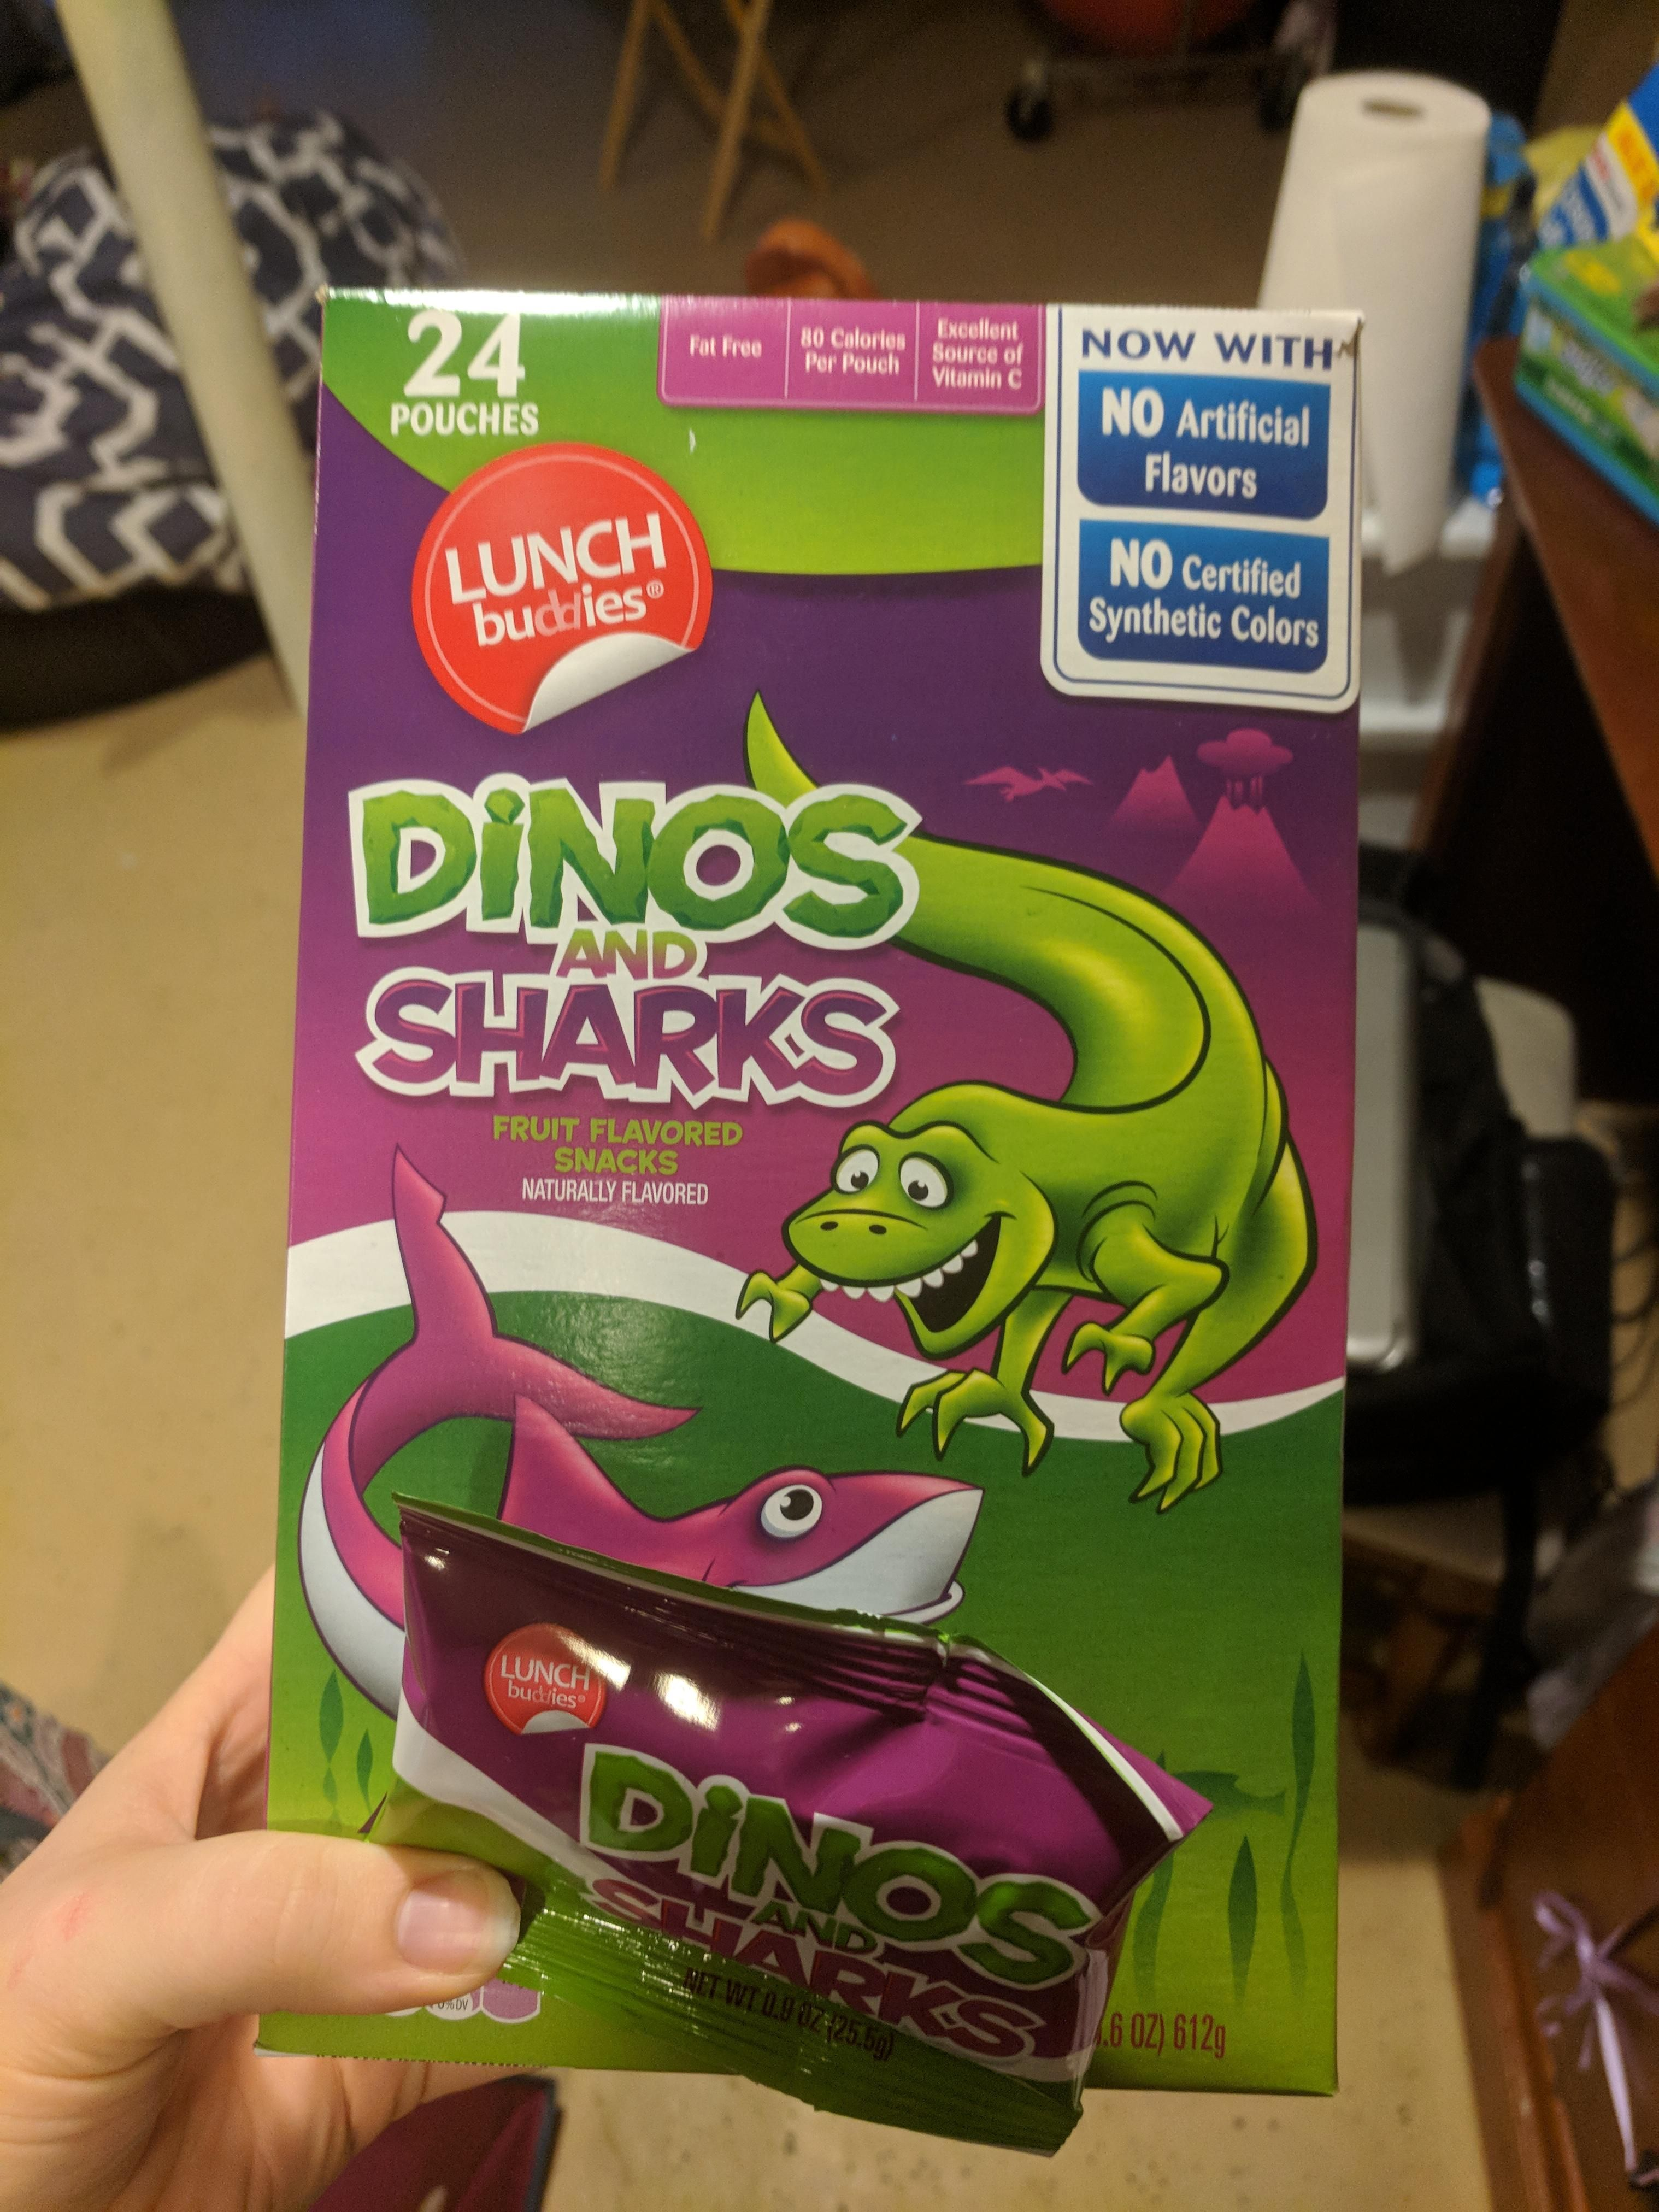 I found vegan fruit snacks at Aldi! And THEY'RE DINOSAURS AND SHARKS